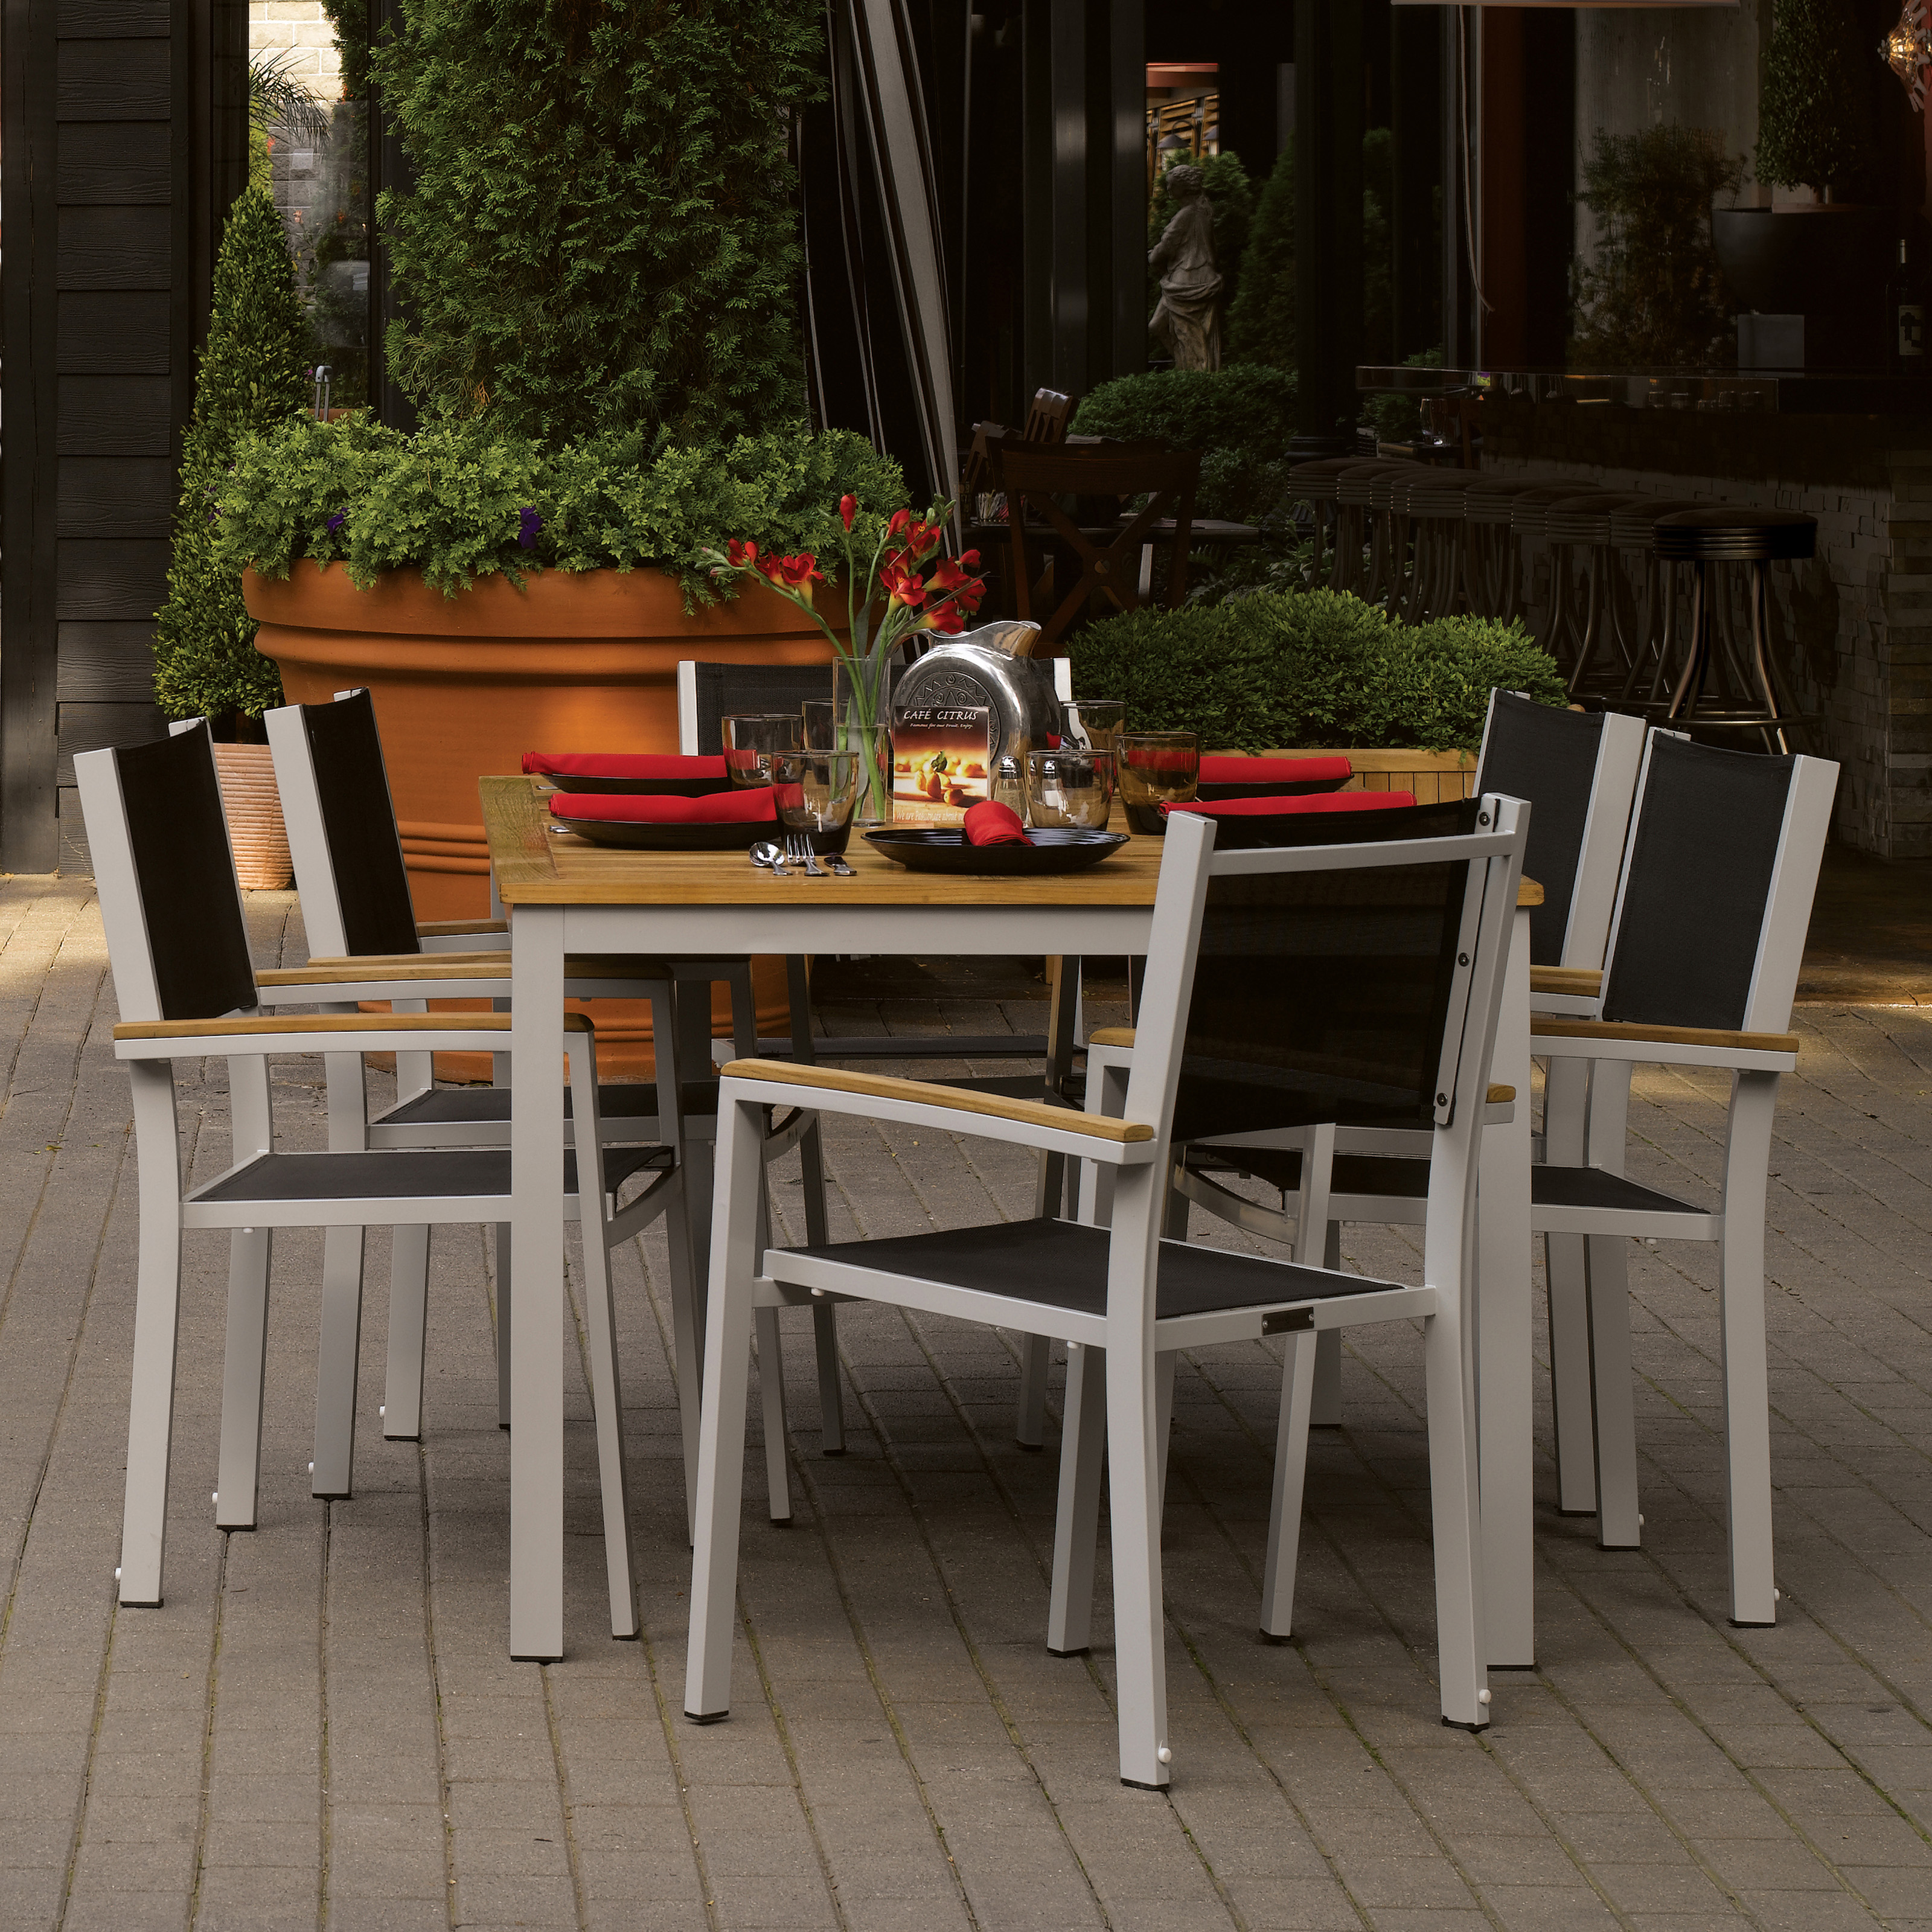 Oxford Garden Travira 63 in Patio Dining Set Seats 6